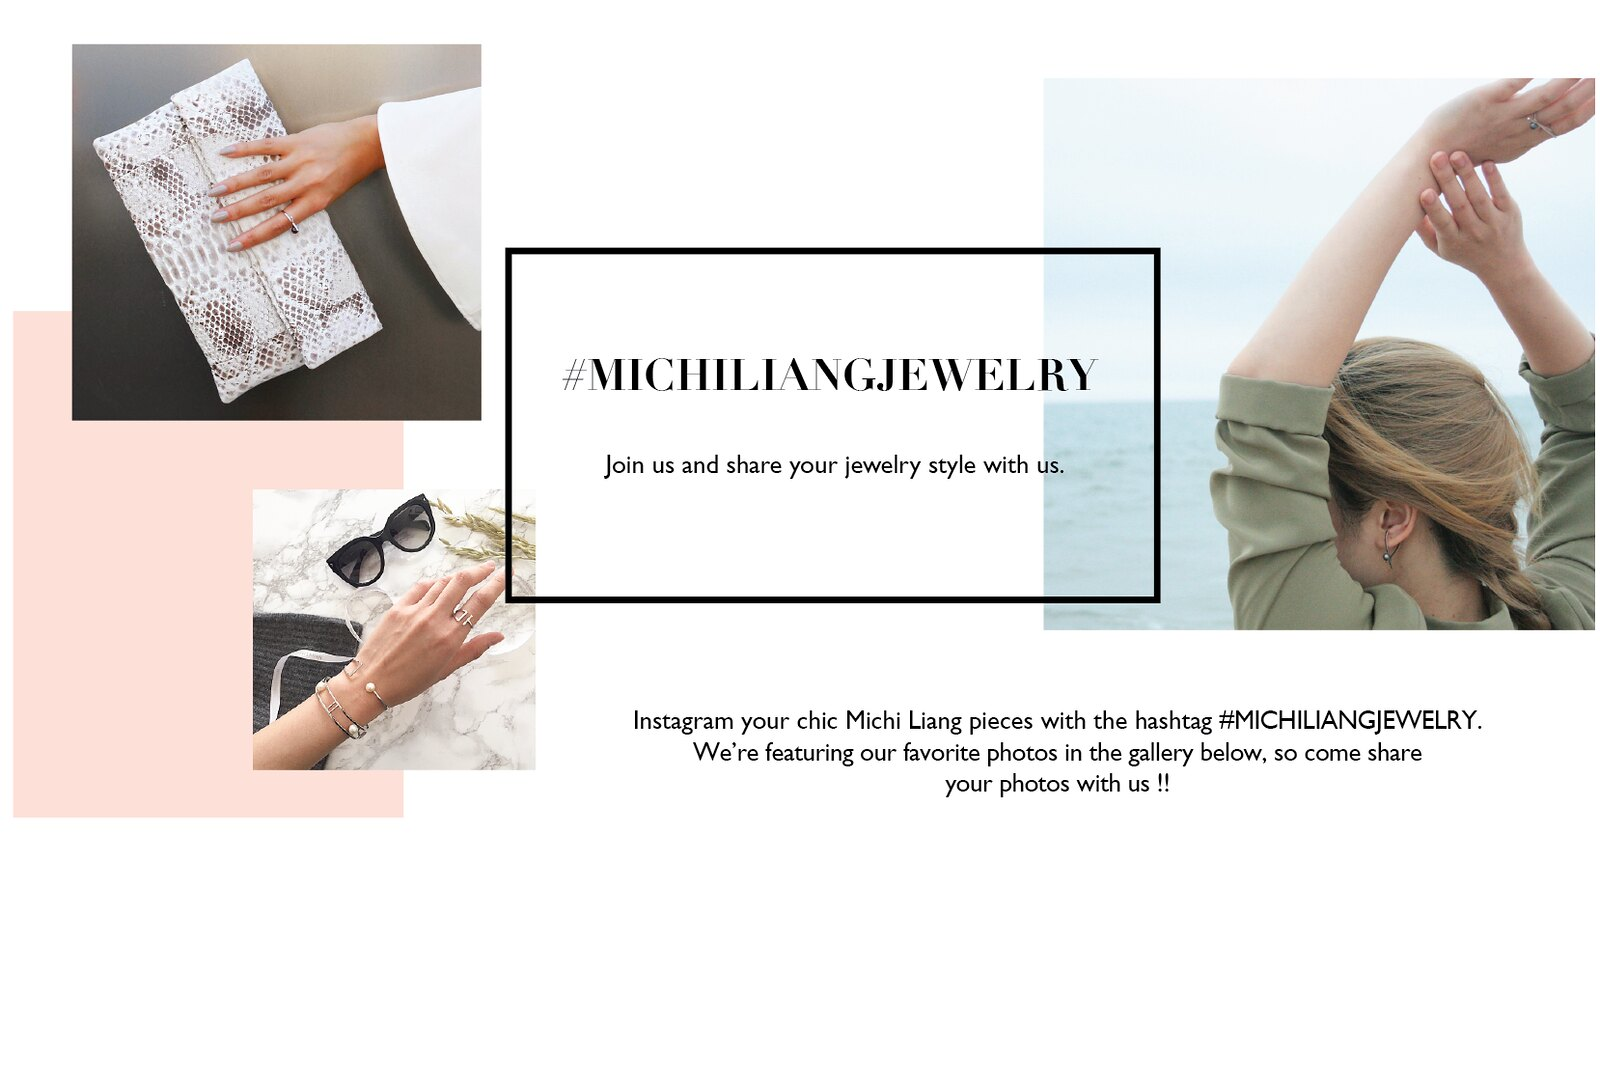 #michiliangjewelry